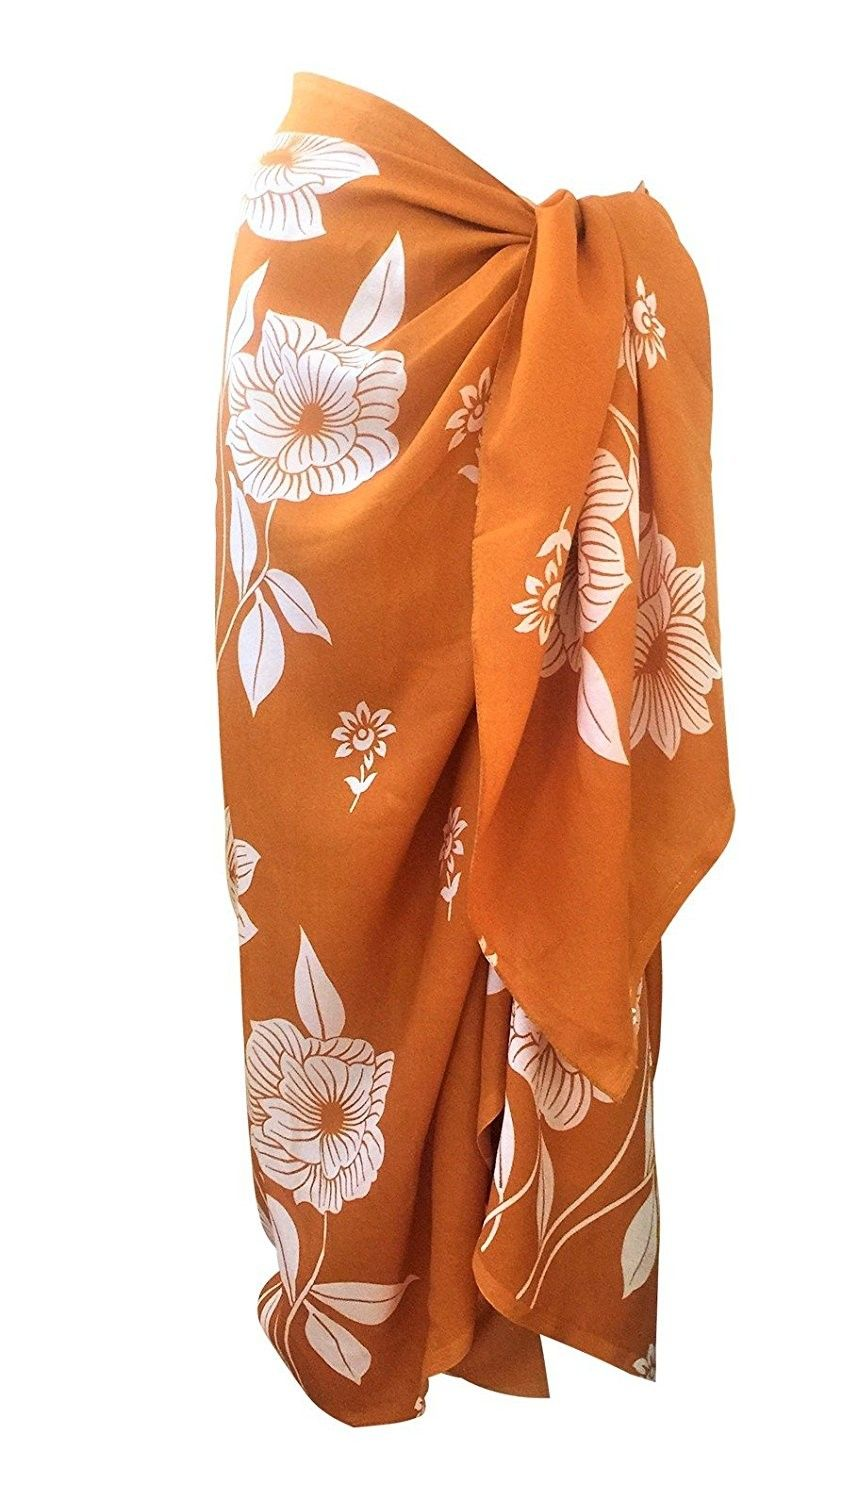 66a2d72846 Women's Clothing, Swimsuits & Cover Ups, Cover-Ups,TC Sheer Chiffon Swim  Beach Sarong Wrap Skirt Cover-up - Brown Floral - CI12ET3IVWJ #Fashion  #Swimsuits ...